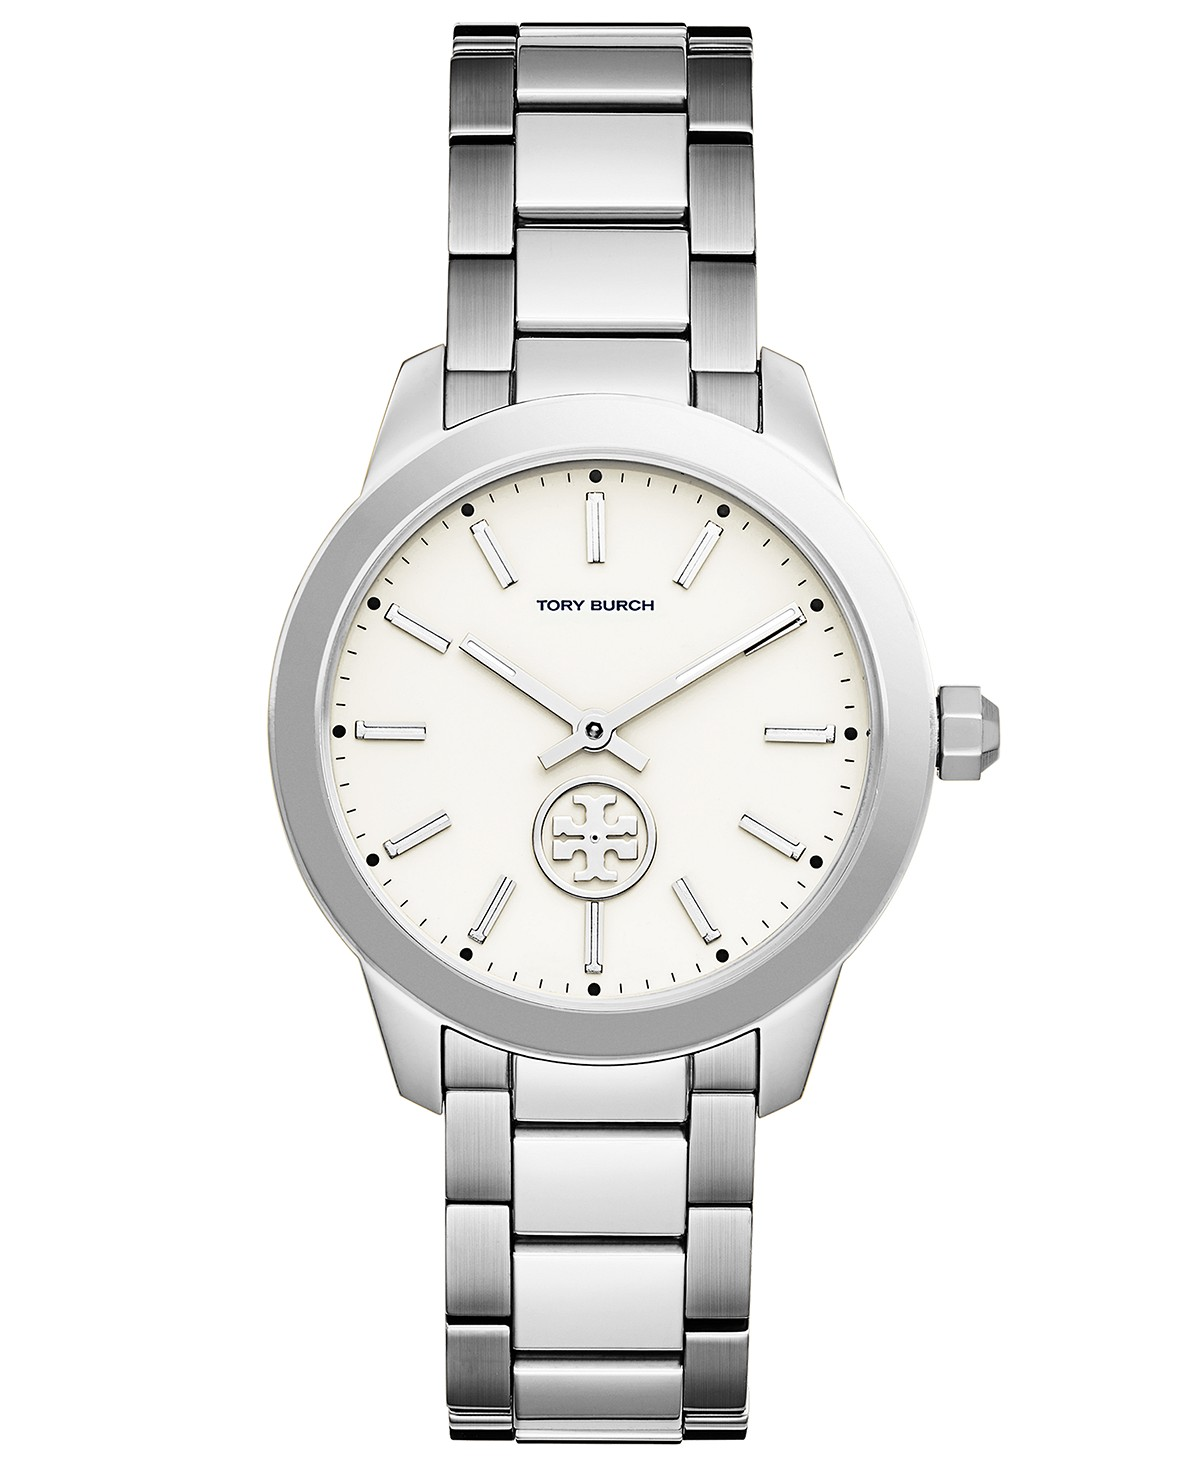 Collins Stainless Steel Bracelet Watch  <table align='center'> <tr><th>Size:38mm</th></tr><tr><td>$275.00</td></tr></table>